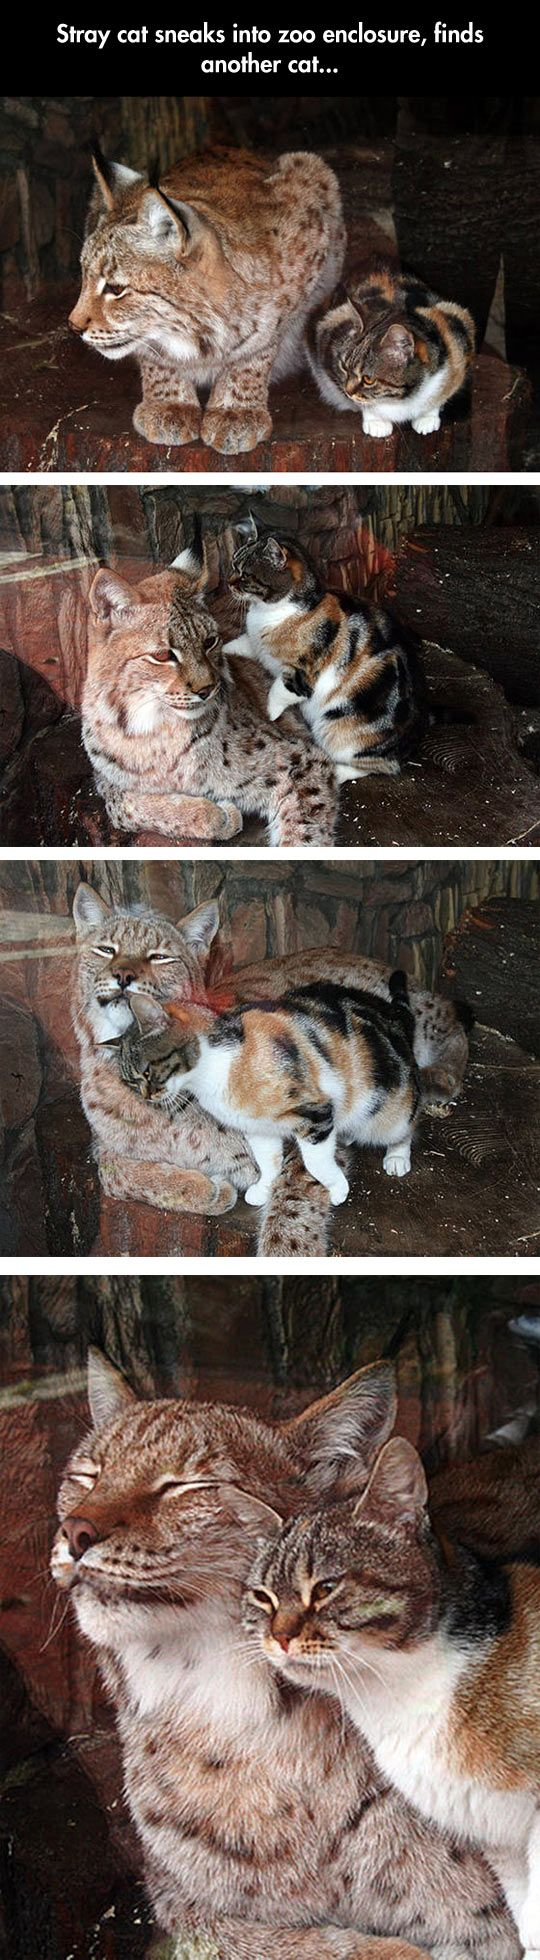 funny-stray-cat-sneaks-zoo